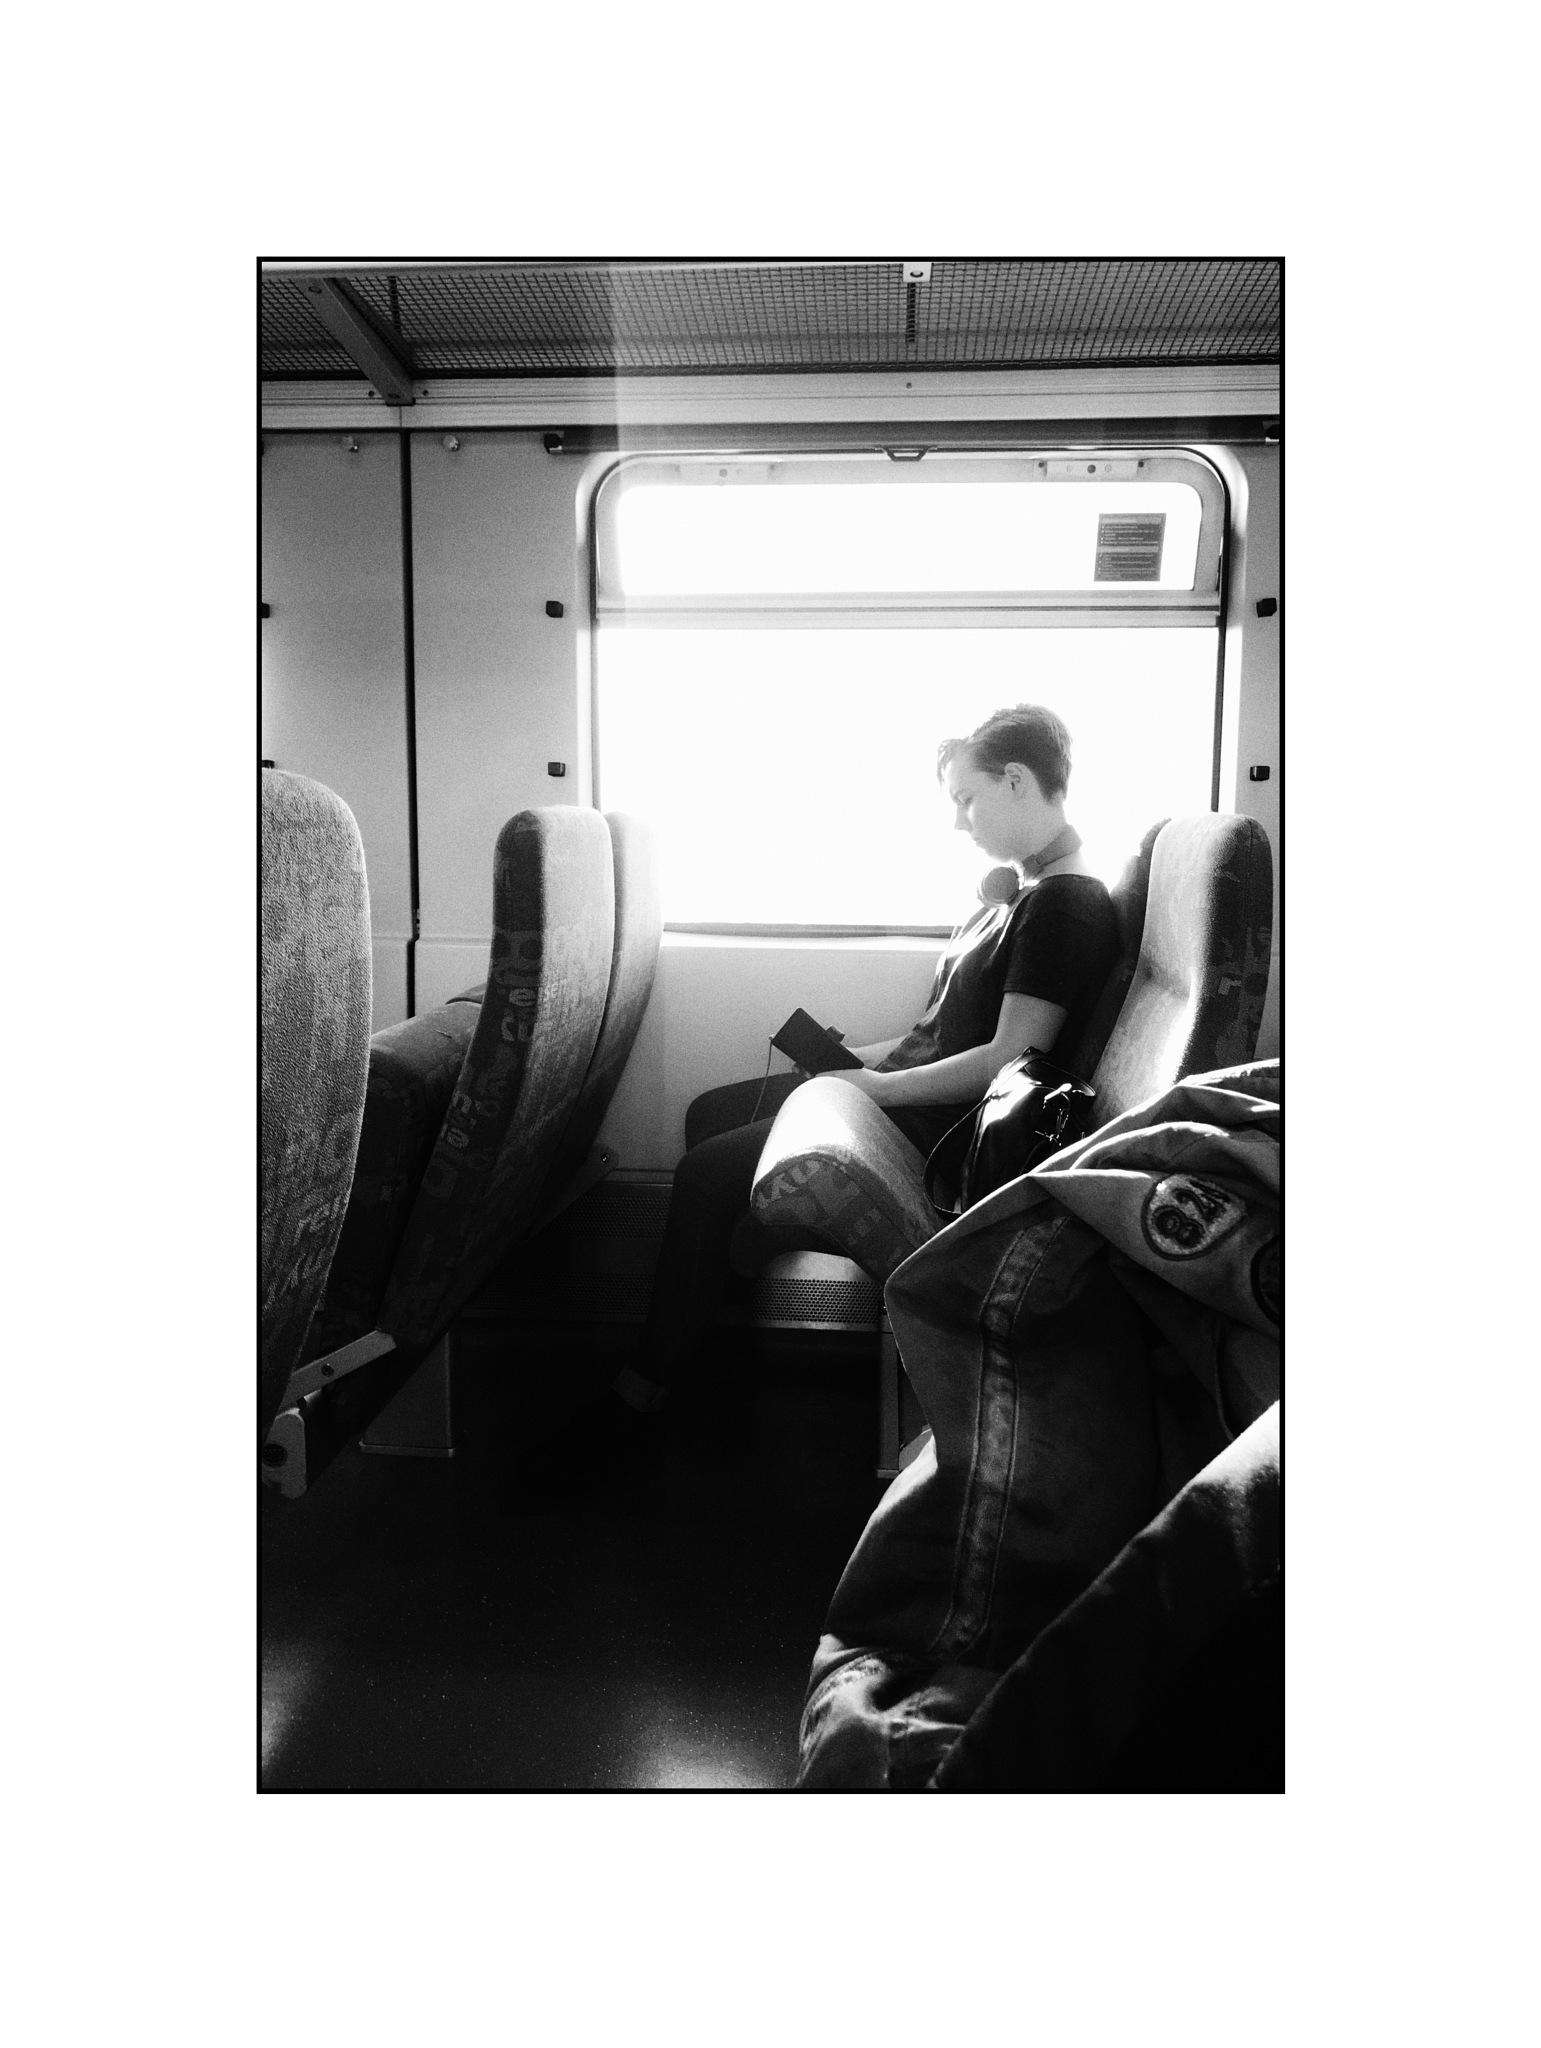 Why Commuting Sucks the Life Out of You by Goran Jorganovich